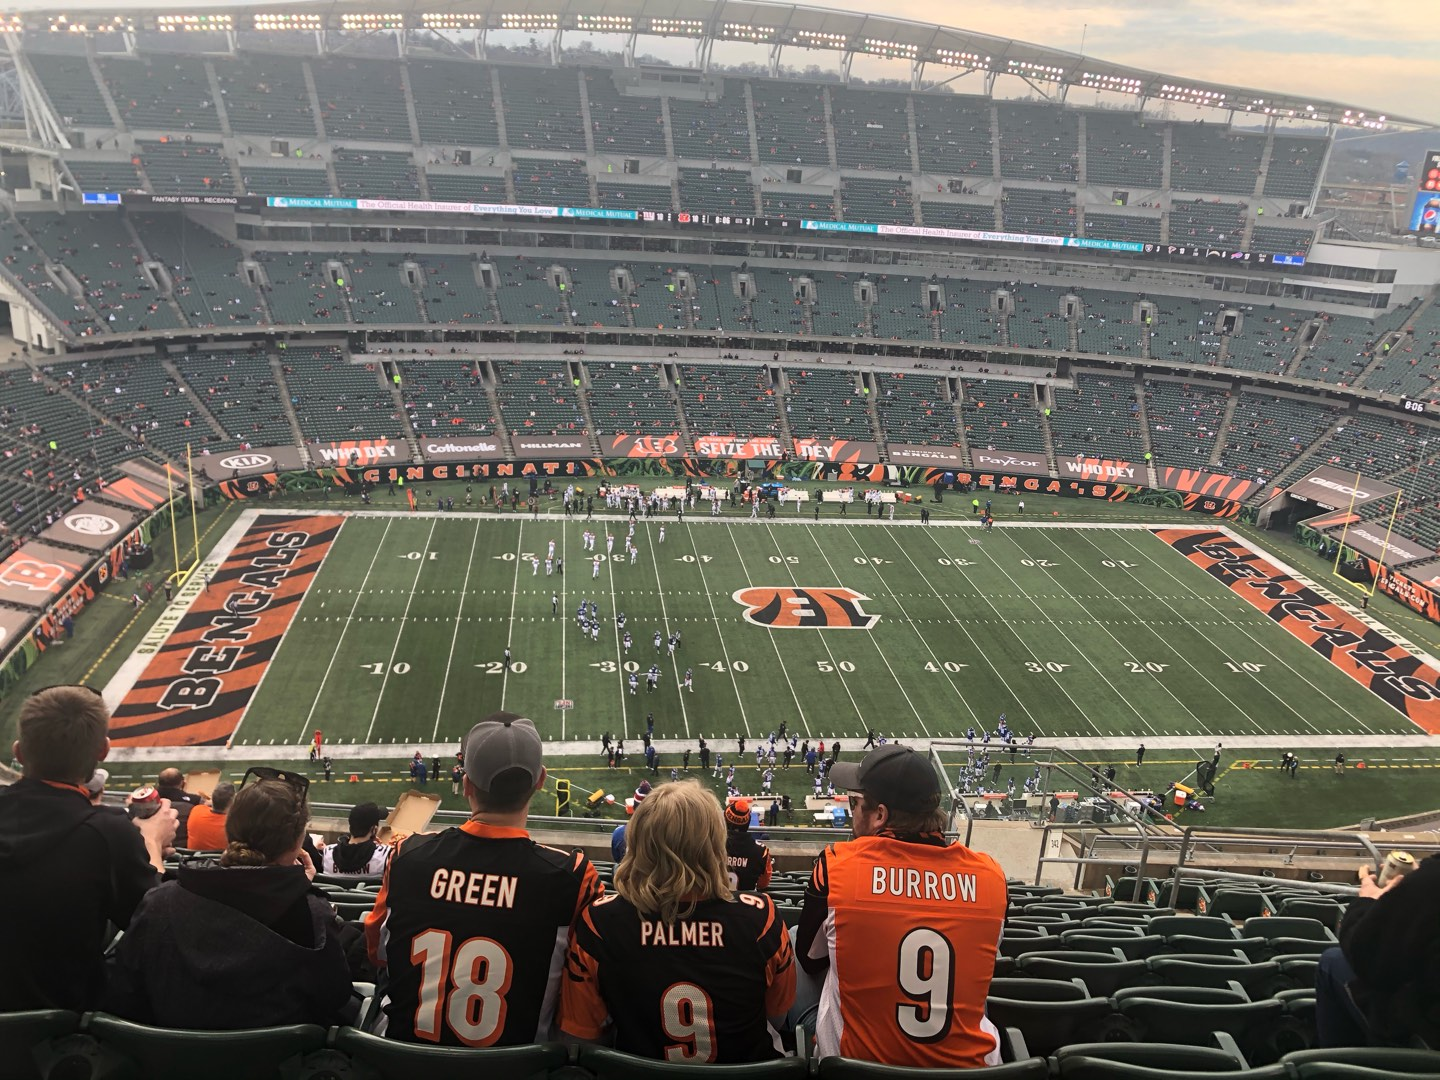 Paul Brown Stadium Section 342 Row 25 Seat 6